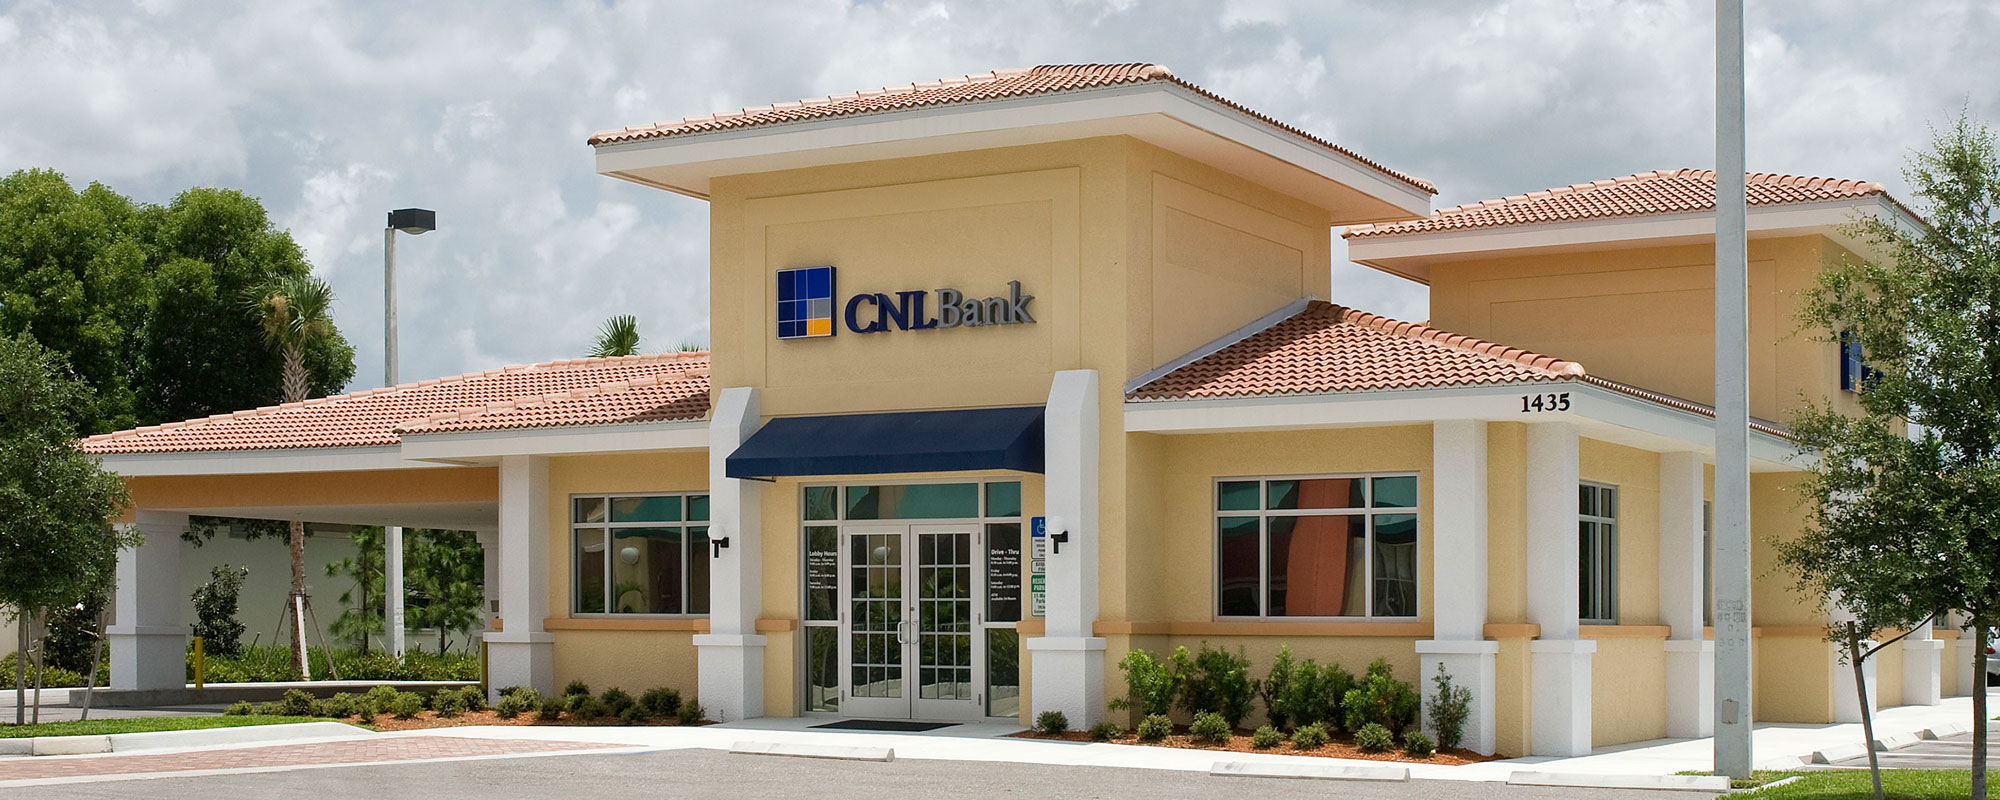 CNL Bank – Naples